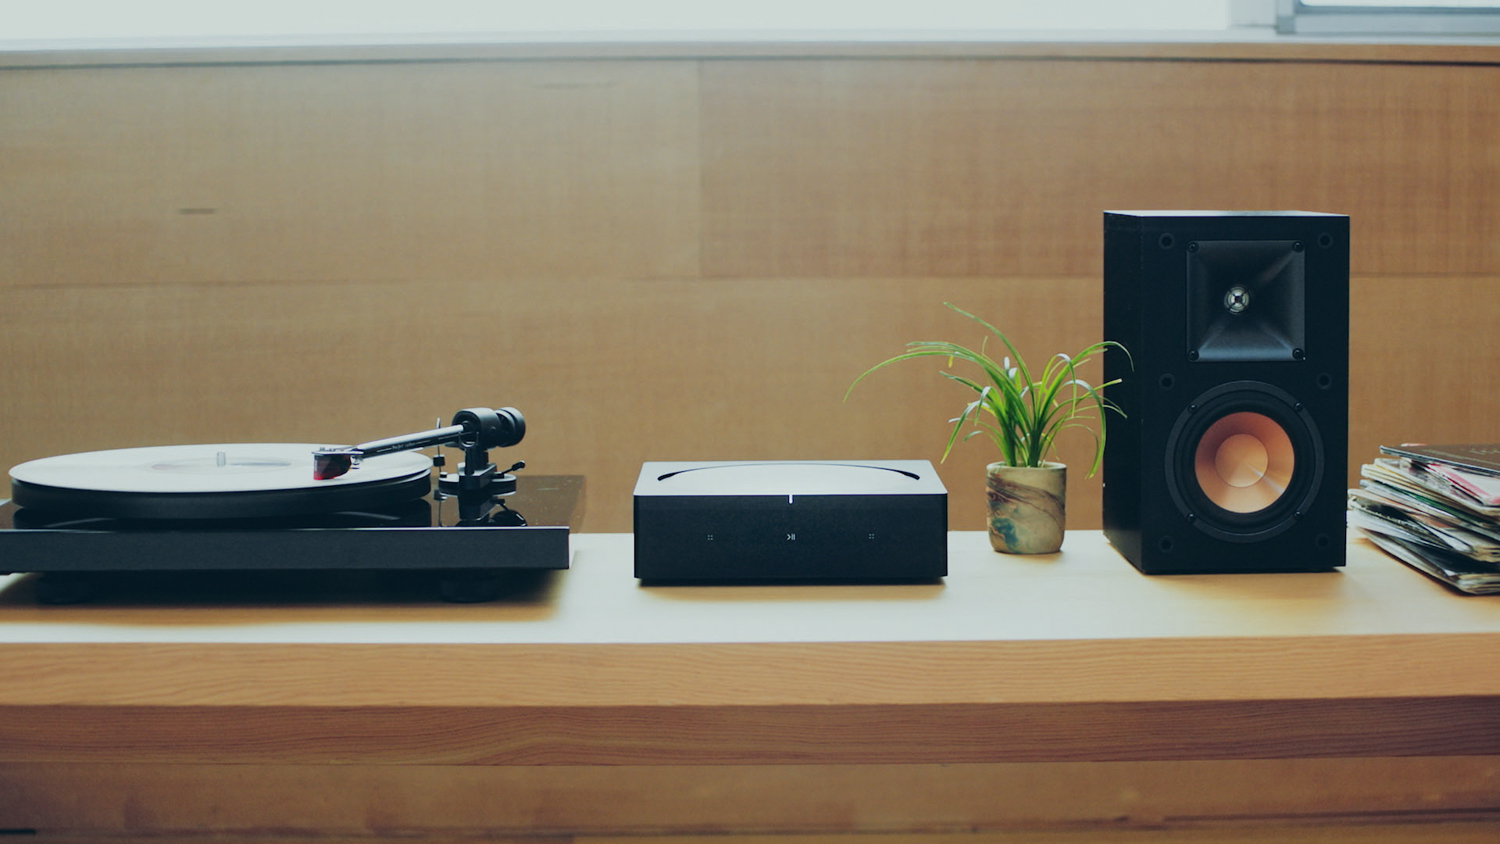 Sonos redefines the architecture of sound with cutting-edge technology